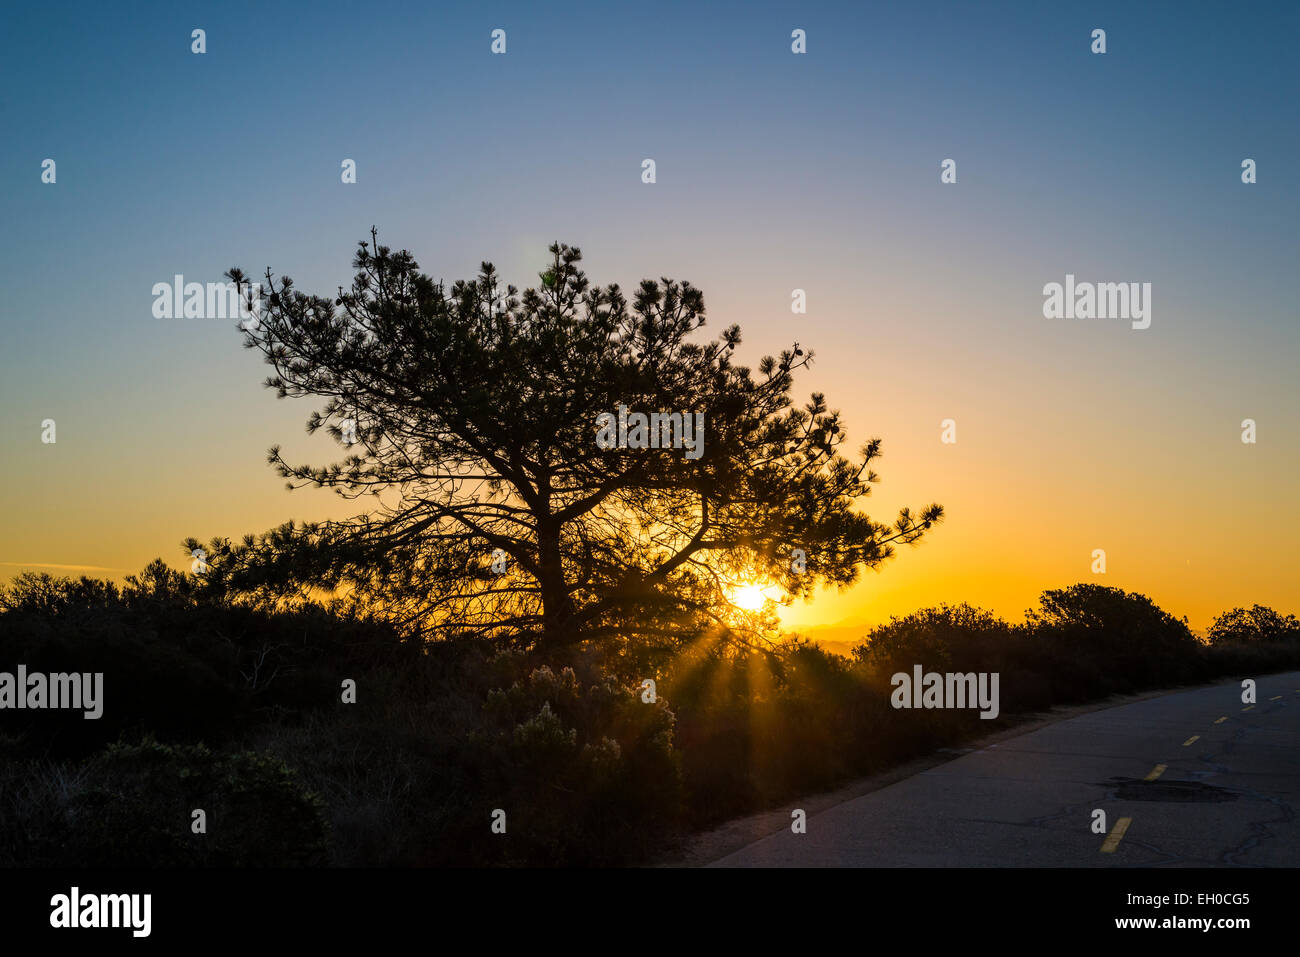 The rising Sun viewed through the branches of a Torrey Pine tree. Torrey Pines State Natural Reserve, La Jolla, - Stock Image